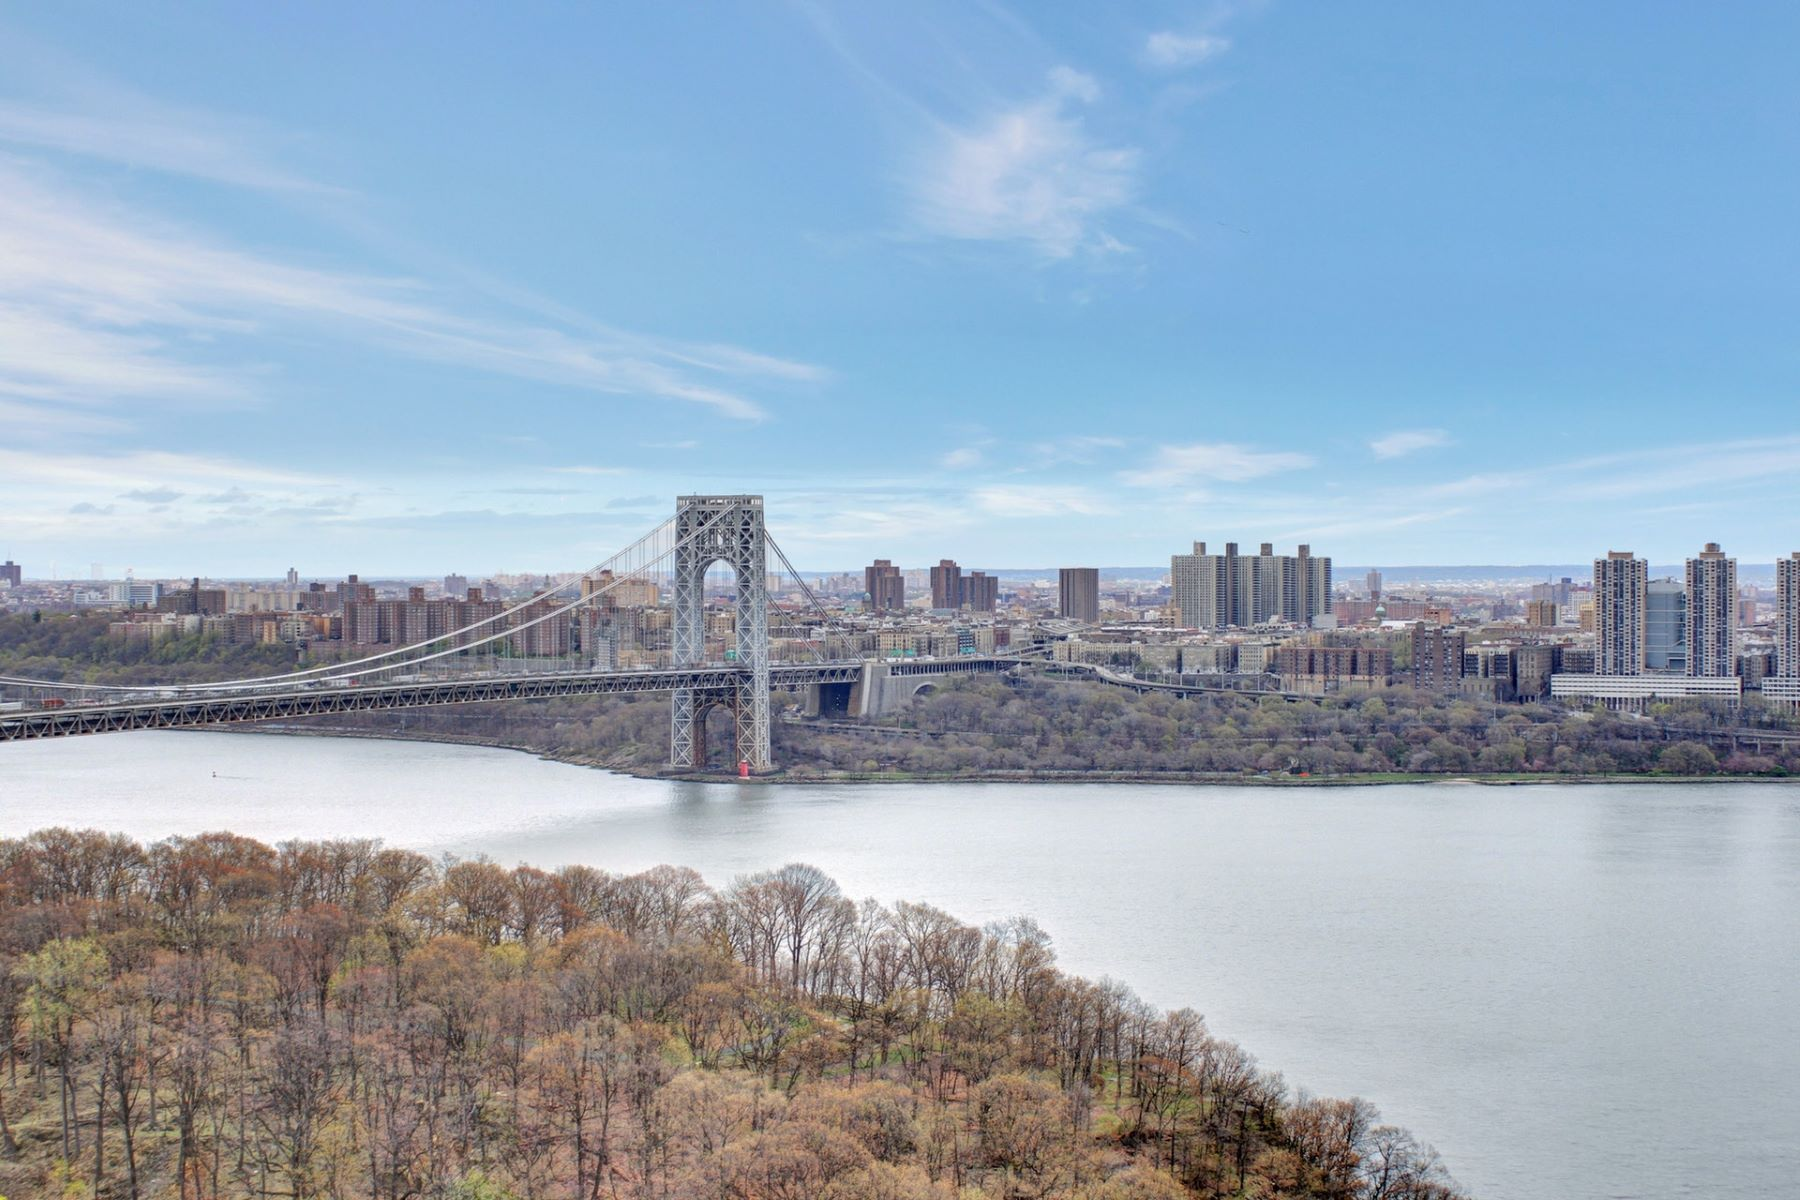 Co-op for Sale at The Colony 1530 Palisade Ave 19R, Fort Lee, New Jersey 07024 United States